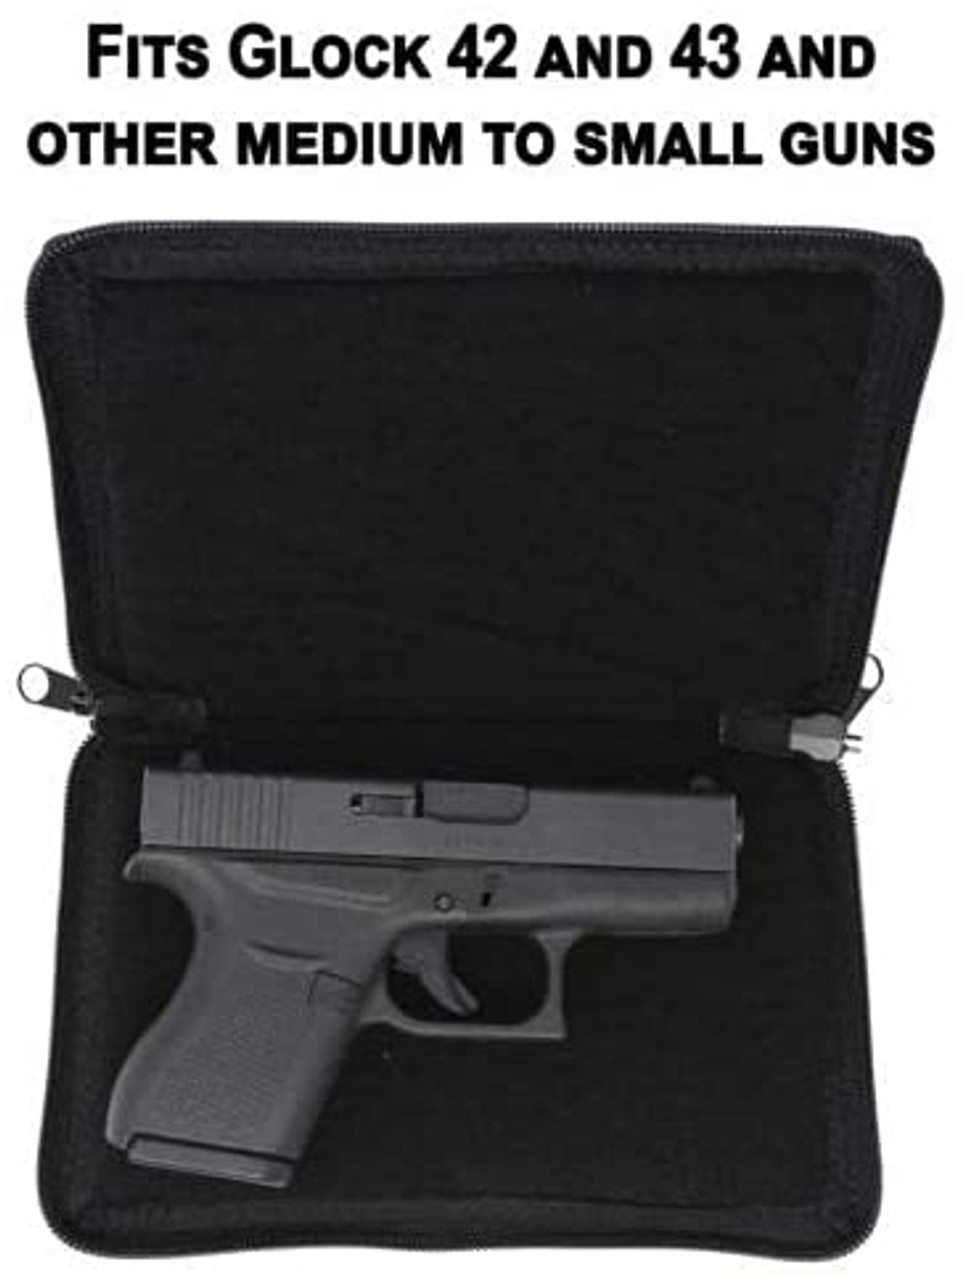 Garrison Grip Lockable Concealed Carry And Bookshelf Semi Hard Shell Day Planner Gun Case With Silver Leaf Lettering For Medium To Small Sized Guns (GTM)